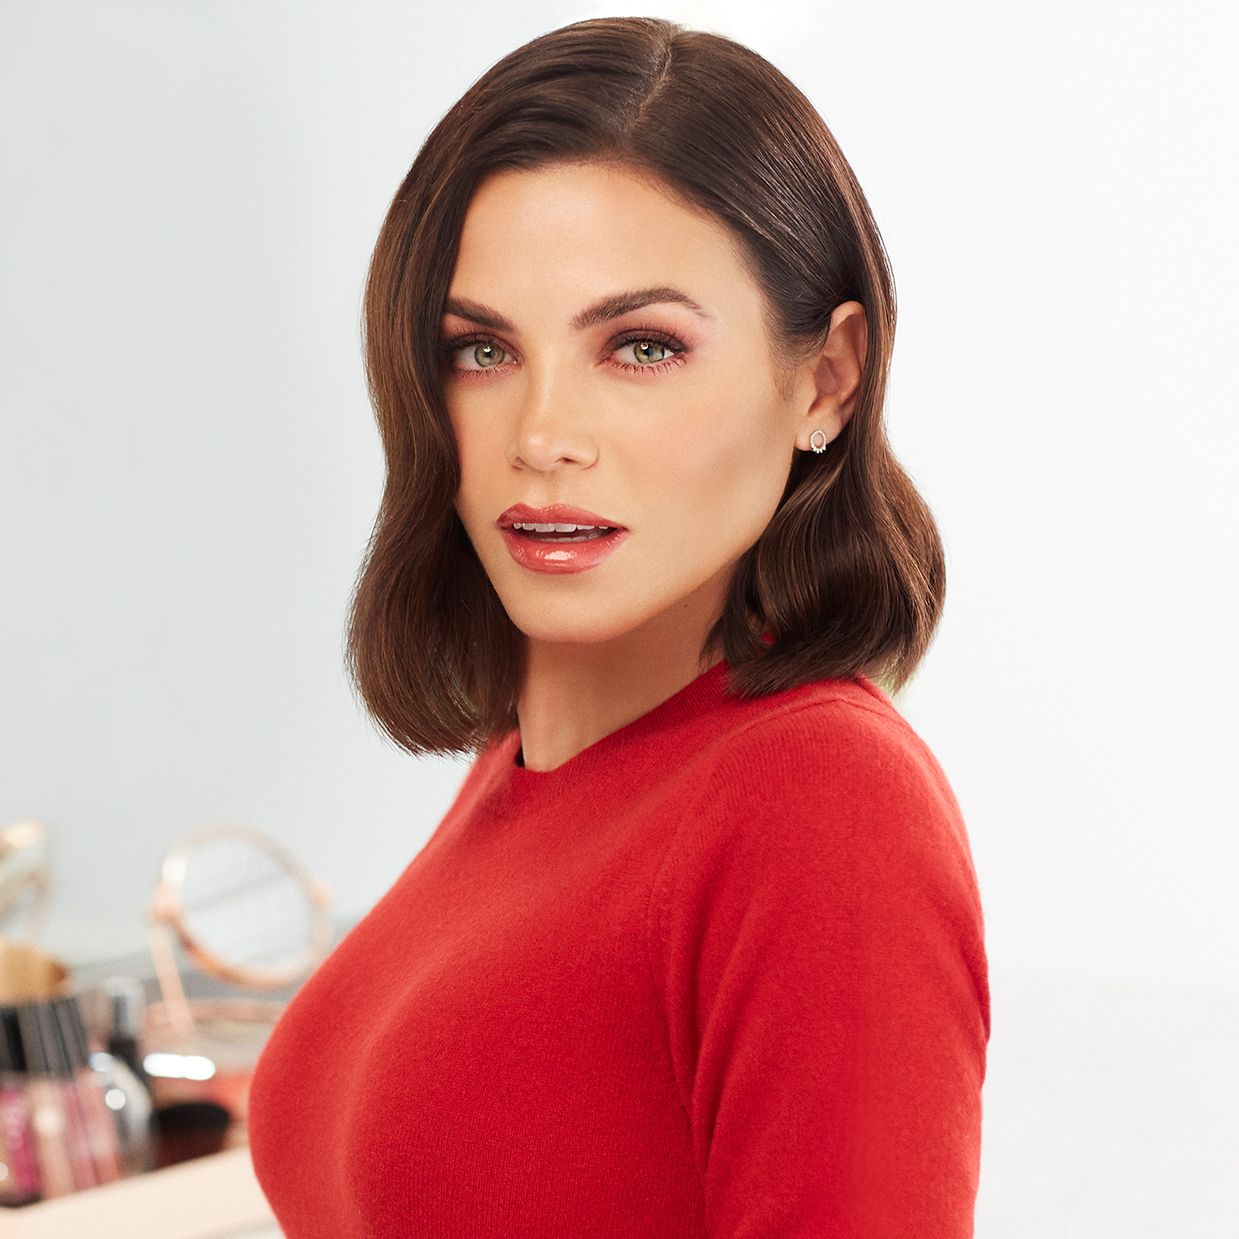 Jenna Dewan Told Us the 8 Skincare Products That Give Her a Youthful, Natural Glow